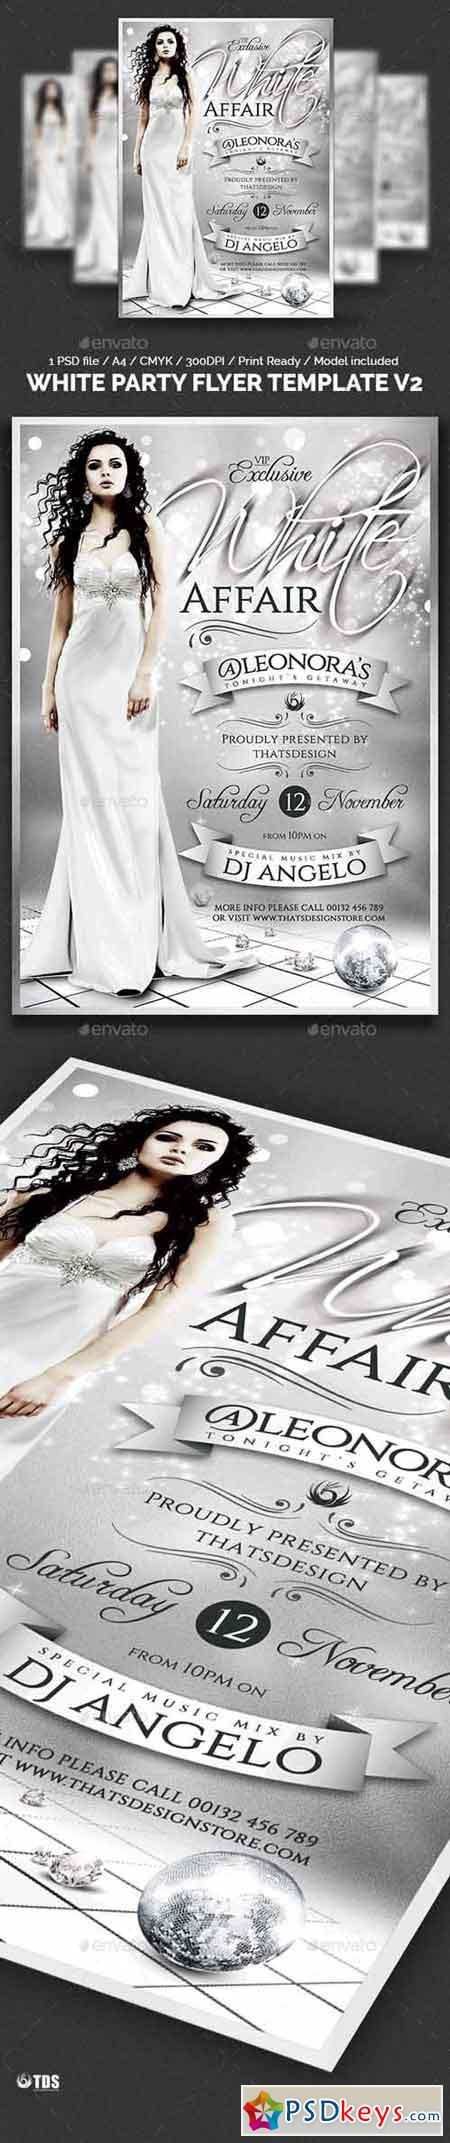 White Party Flyer Template V2 13327897